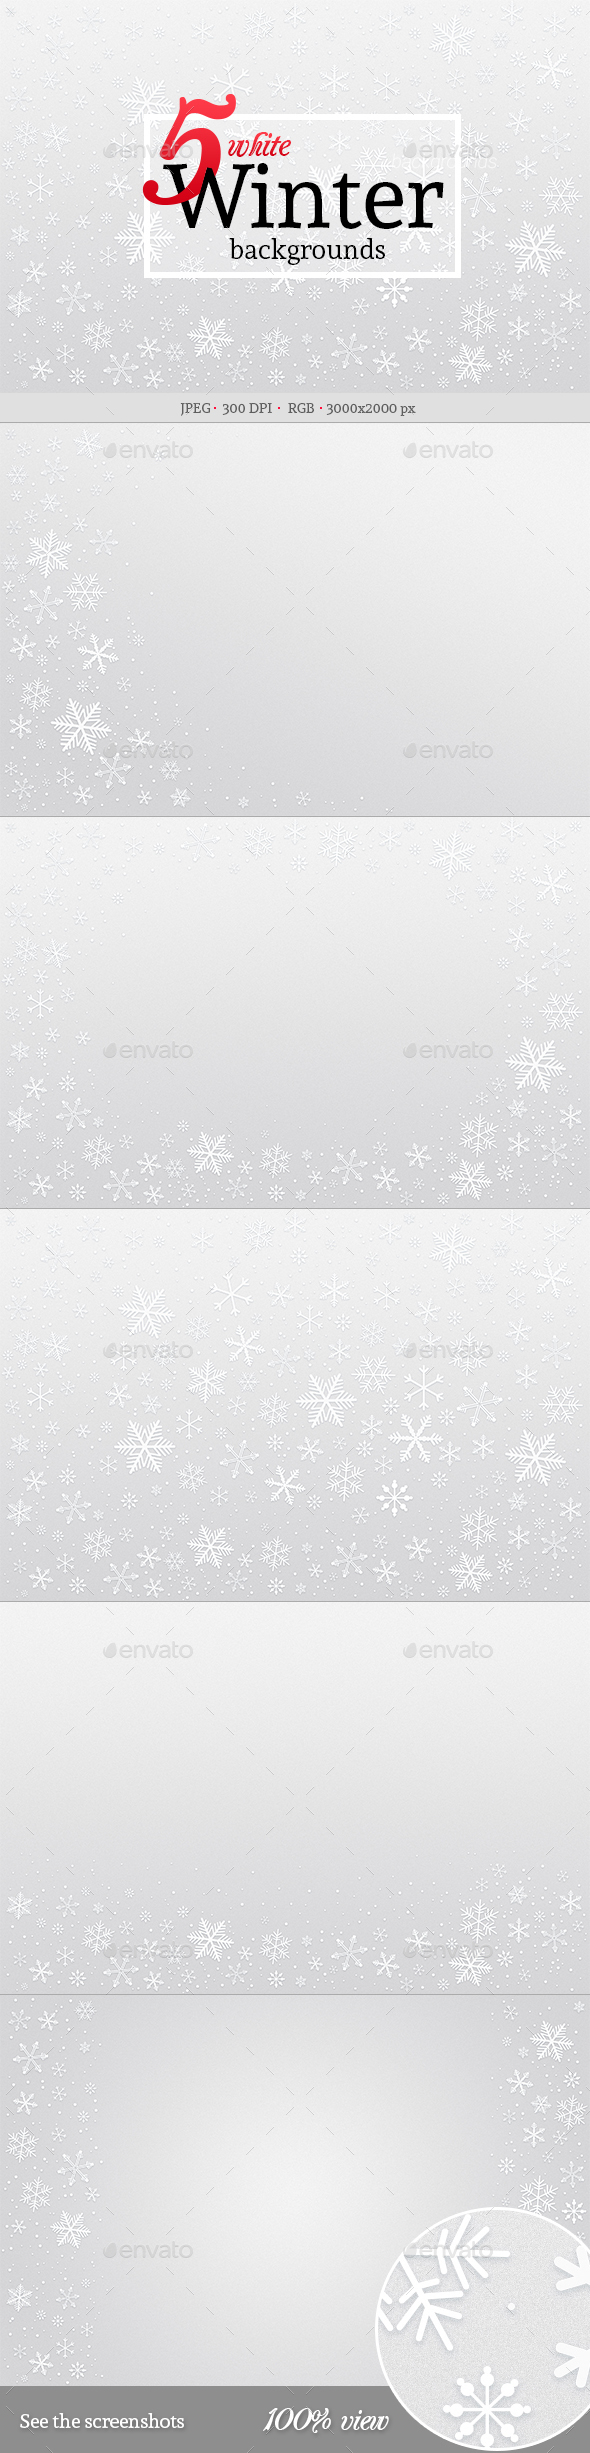 5 White Winter Backgrounds - Backgrounds Graphics